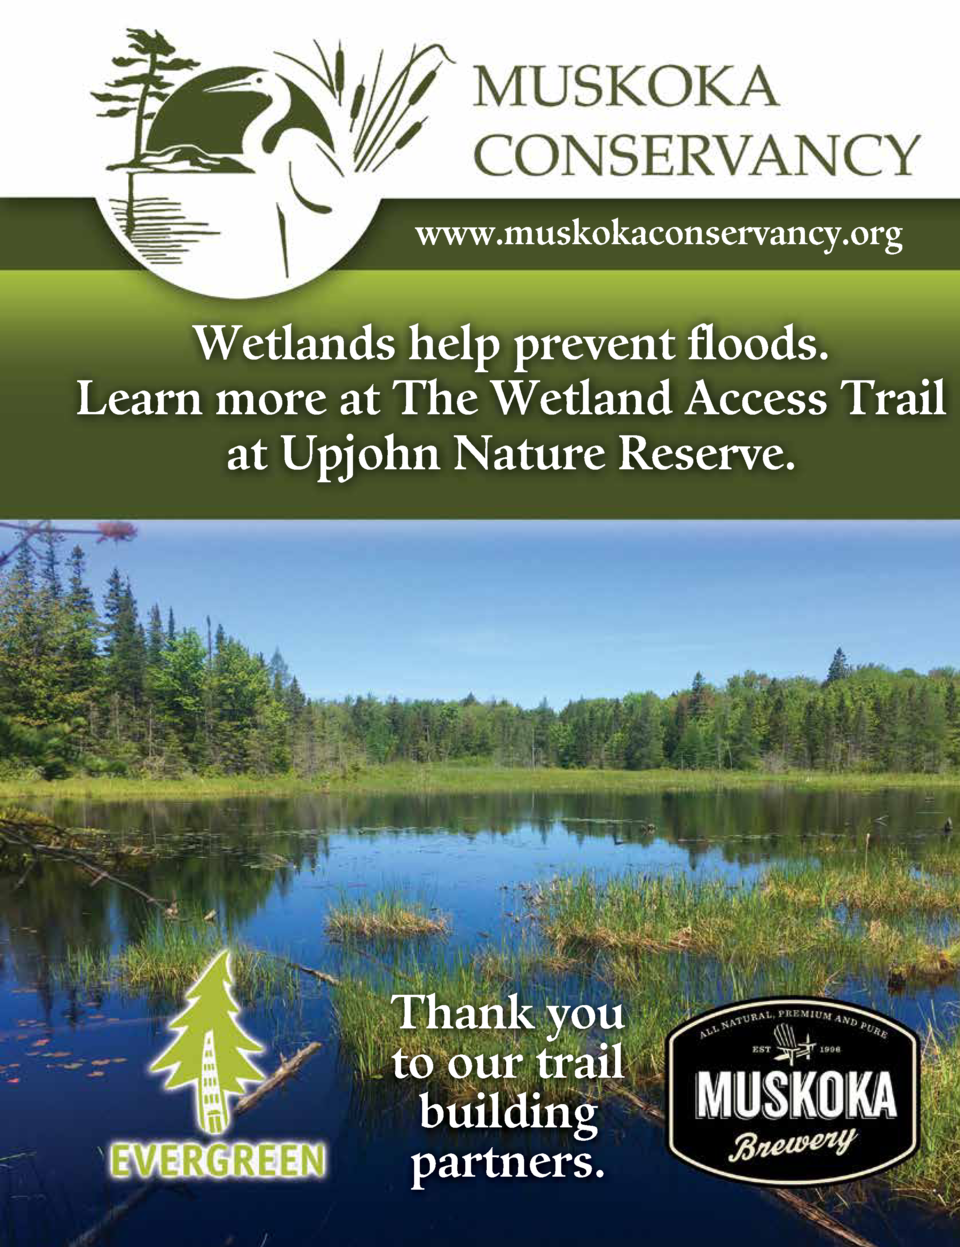 www.muskokaconservancy.org  Wetlands help prevent floods. Learn more at The Wetland Access Trail at Upjohn Nature Reserve....